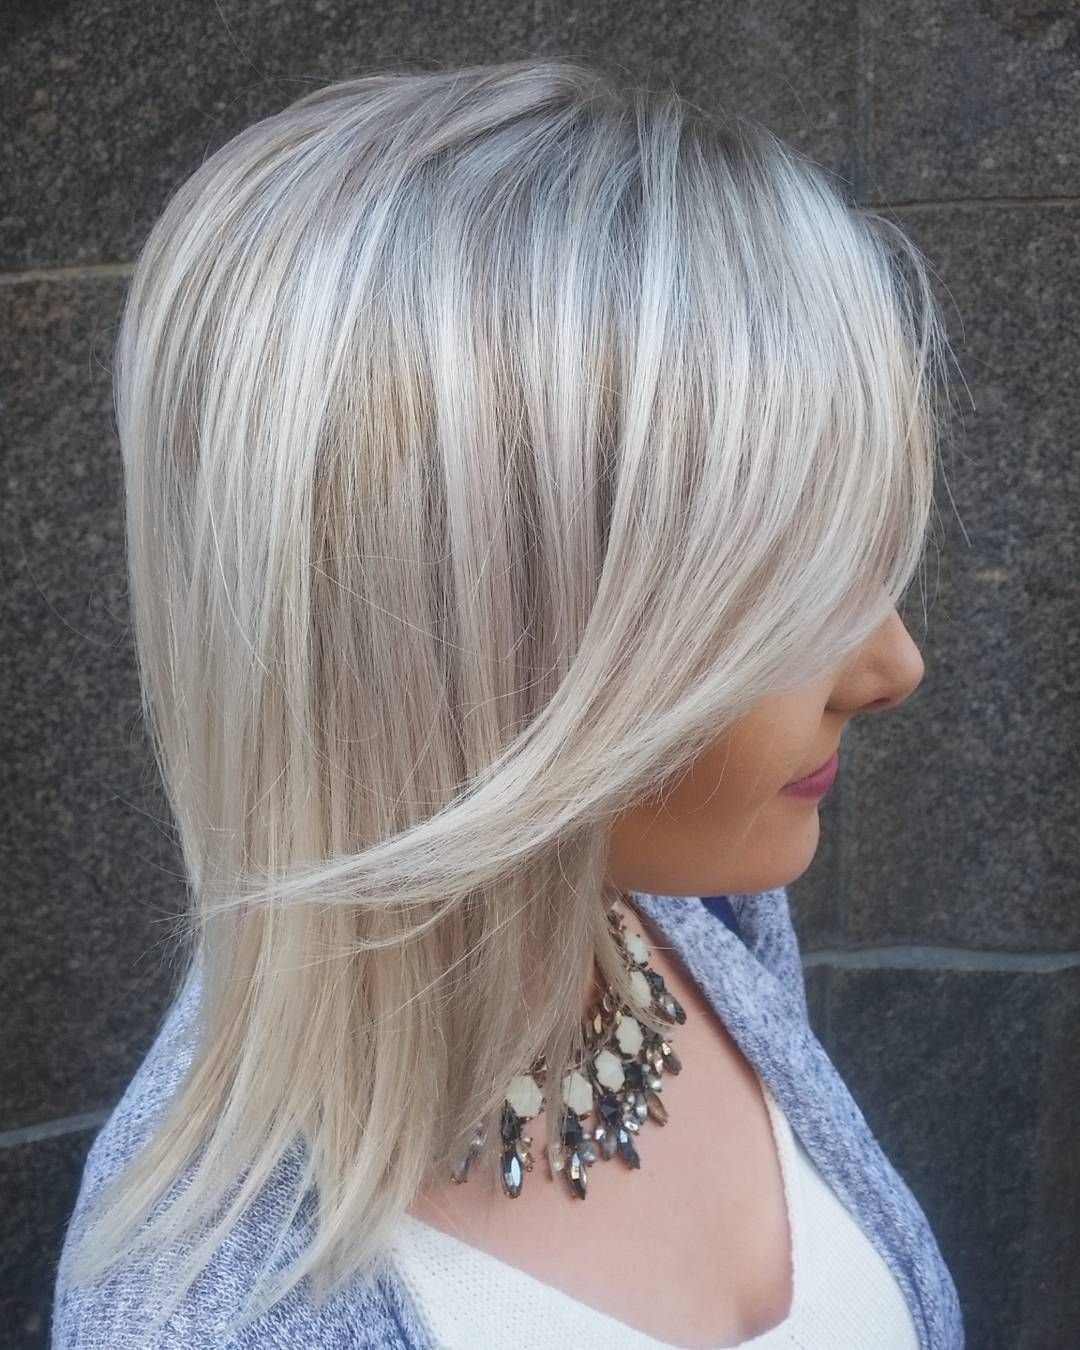 50 Stunning Light and Dark Ash Blonde Hair Color Ideas ...Light Ash Blonde Hair